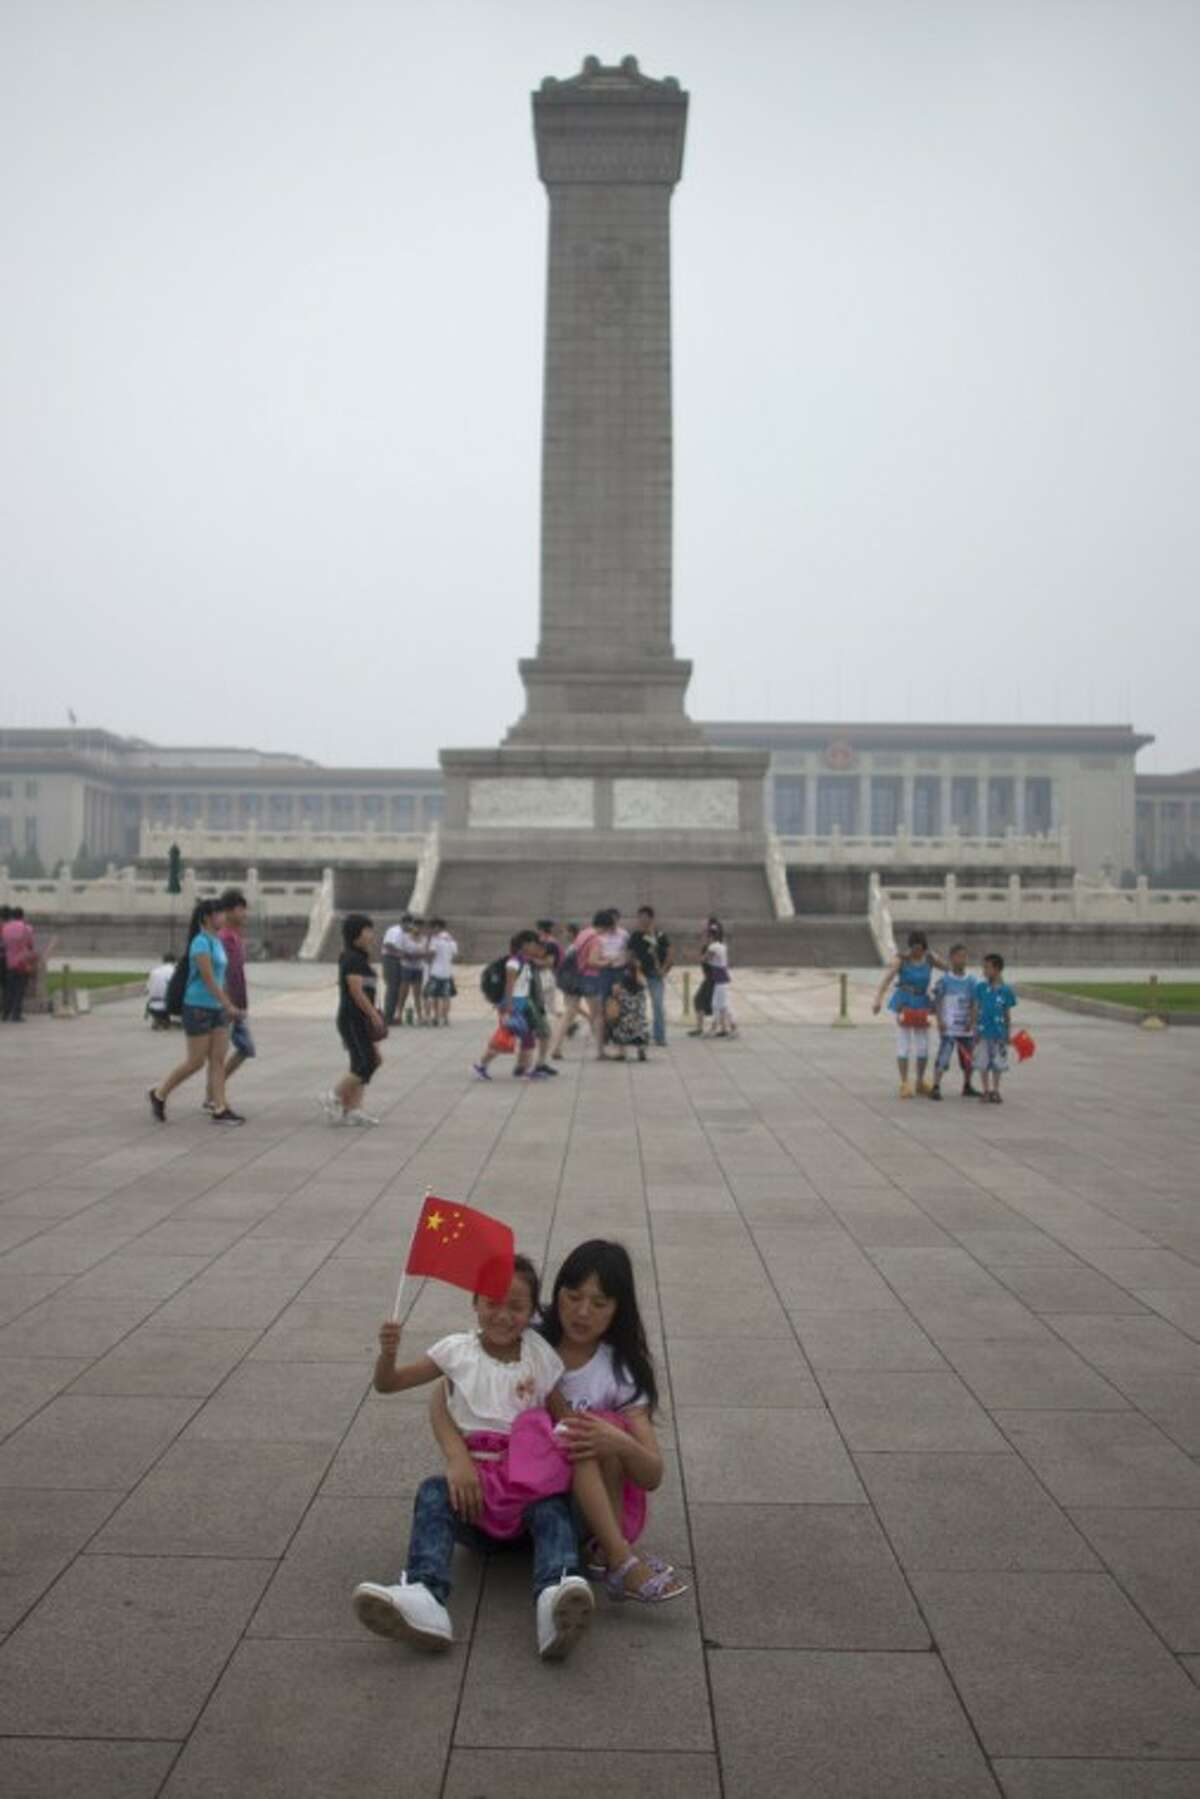 In this Monday, July 9, 2012 photo, a girl waves Chinese national flag while resting with her mom in front of the Monument to People's Heroes on the Tiananmen Square in Beijing, China. Tiananmen Square, the world's largest public square, is surrounded by buildings of political and cultural significance and is visited by thousands of tourists daily. (AP Photo/Alexander F. Yuan)